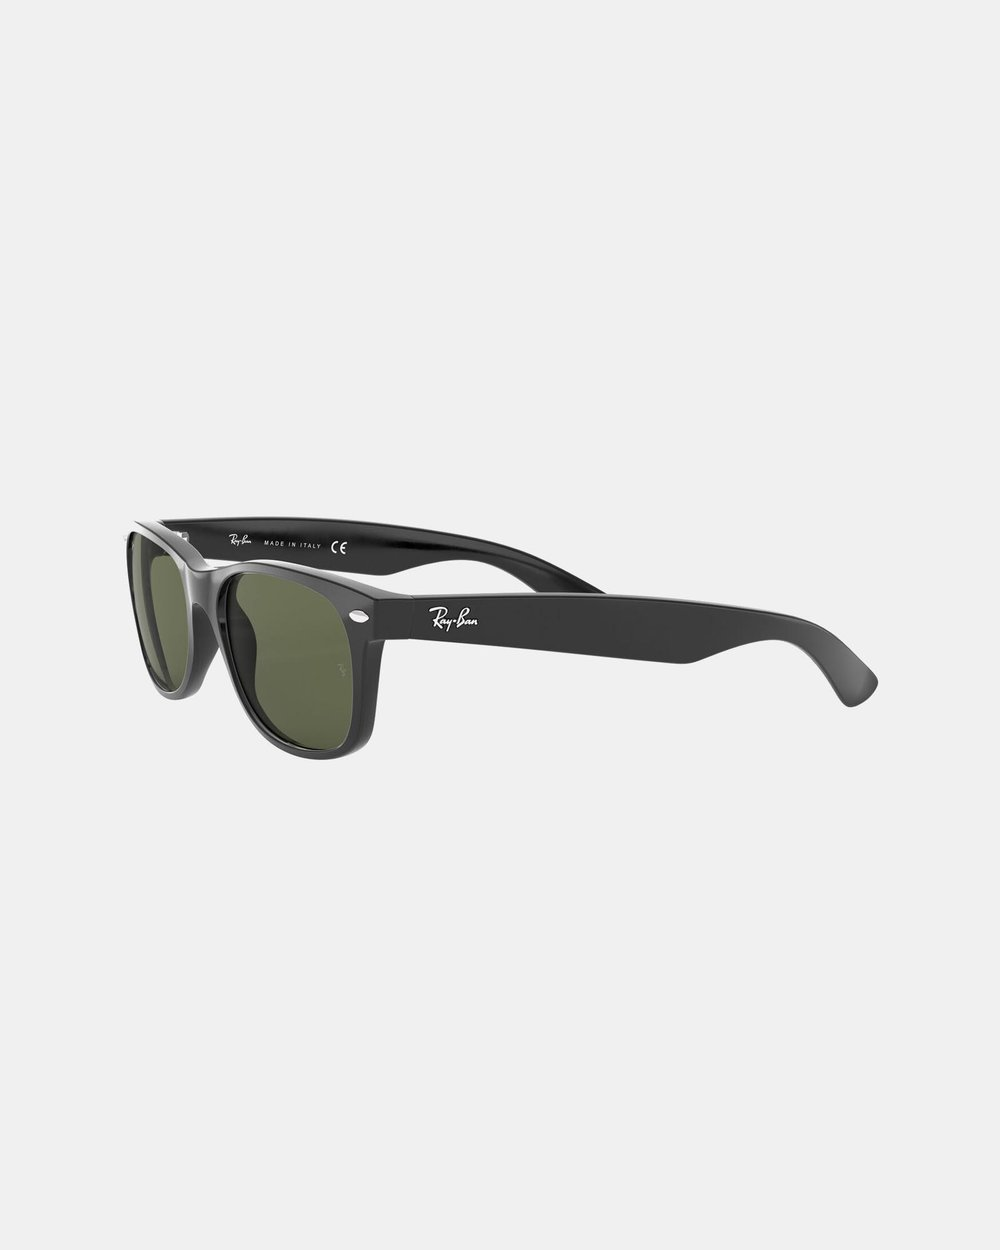 New Wayfarer Classic by Ray-Ban Online  5c5e3c798caf